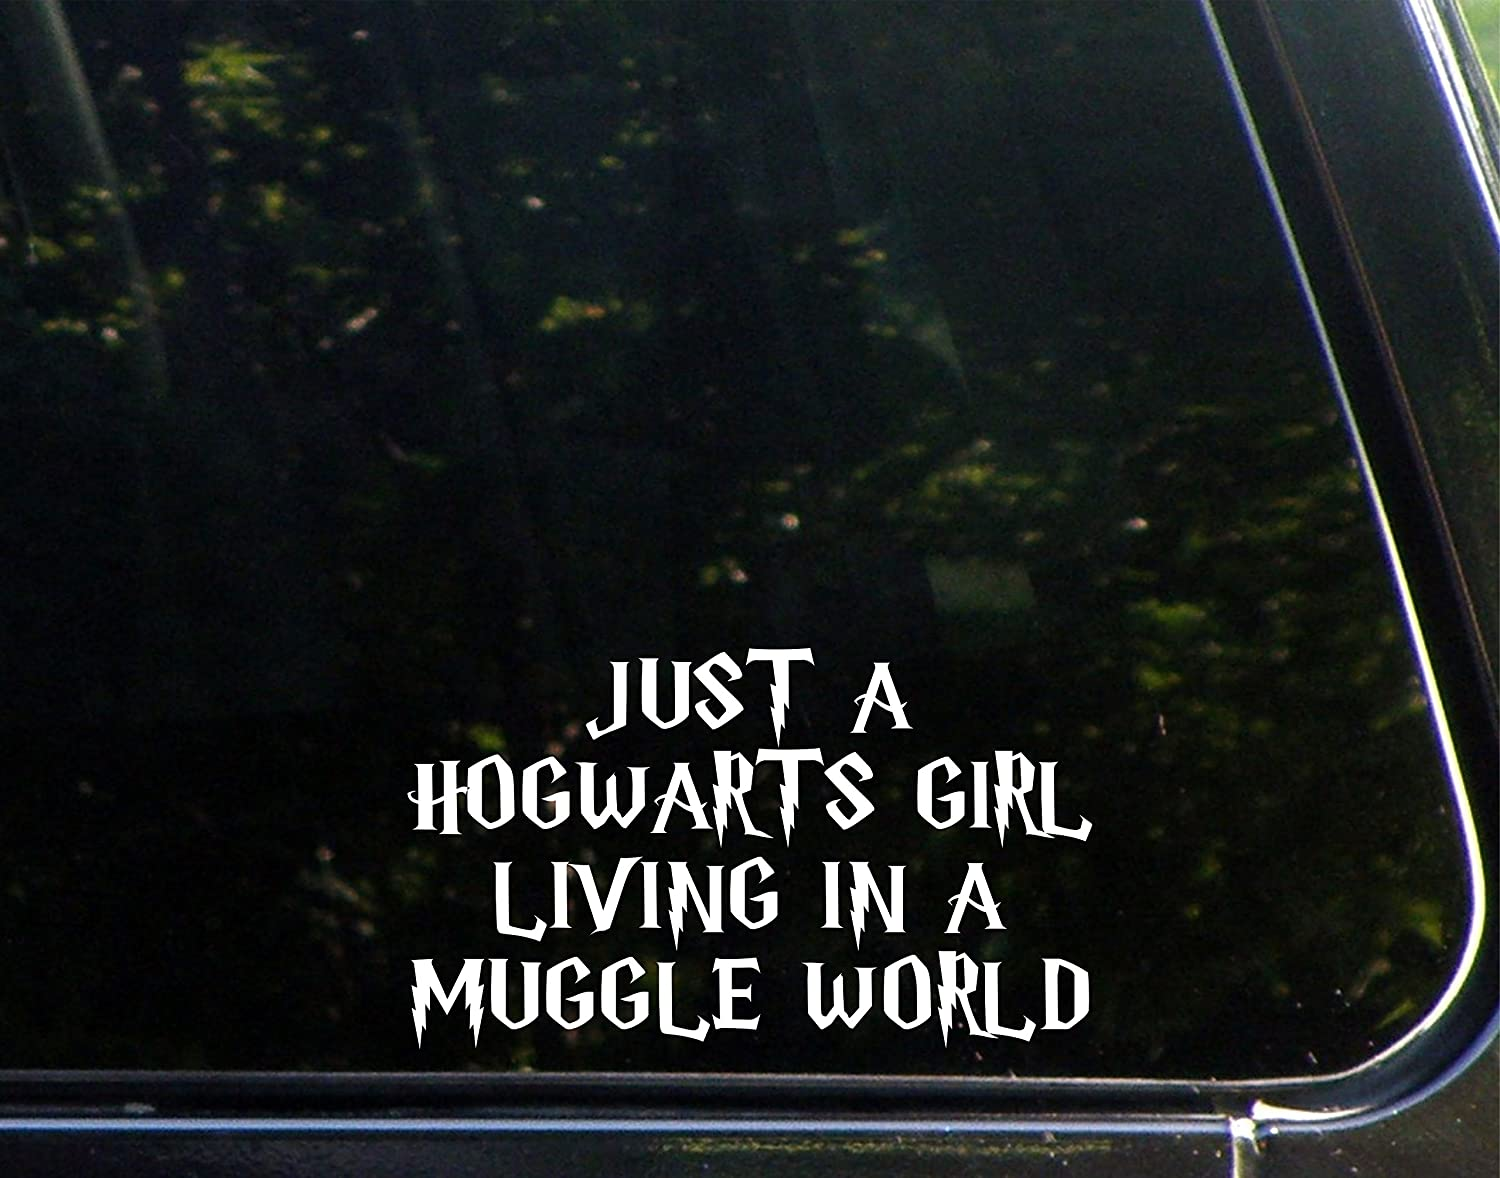 Amazoncom Just A Hogwarts Girl Living In A Muggle World - How to make vinyl decals stick better